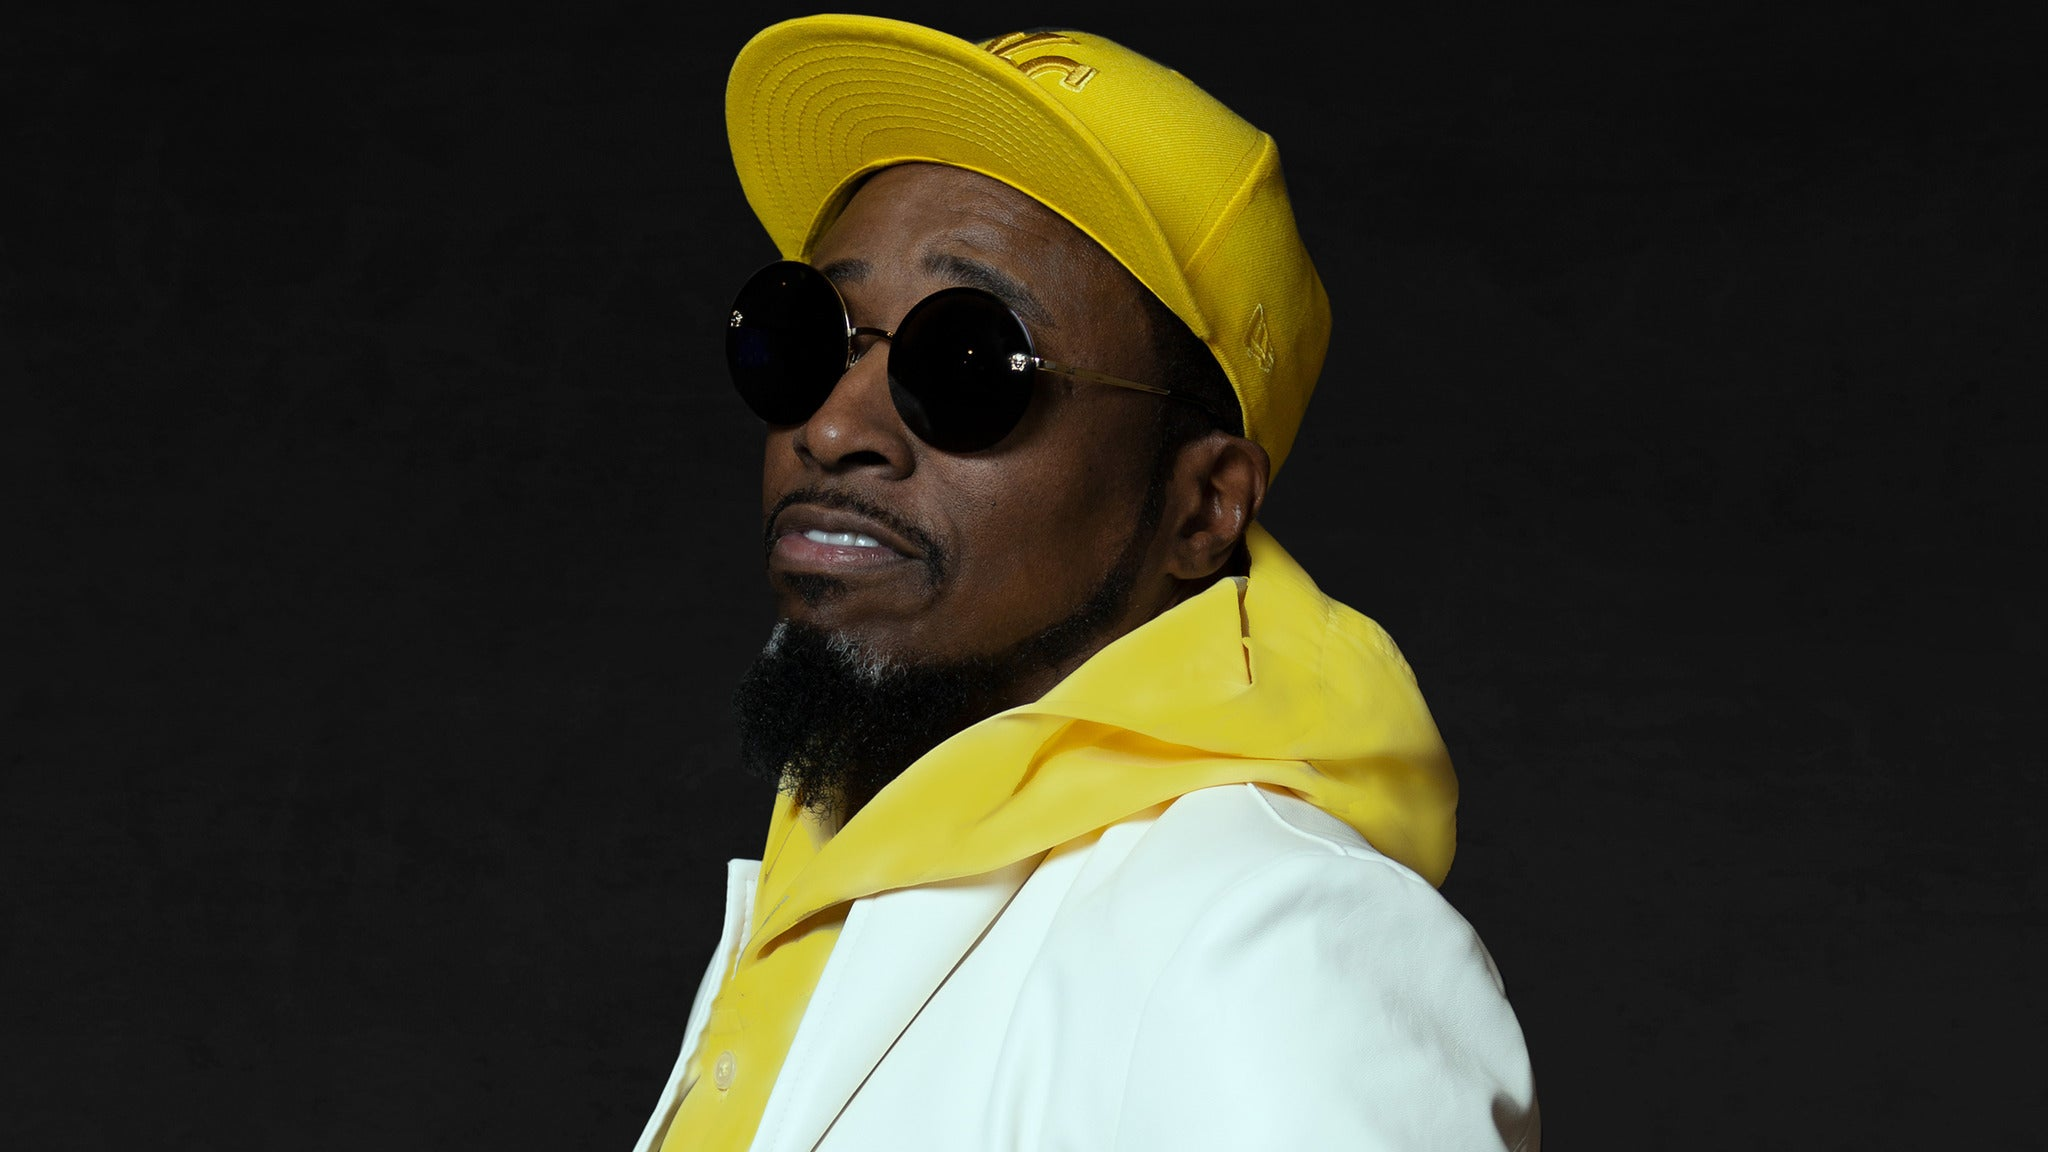 The Eddie Griffin Experience